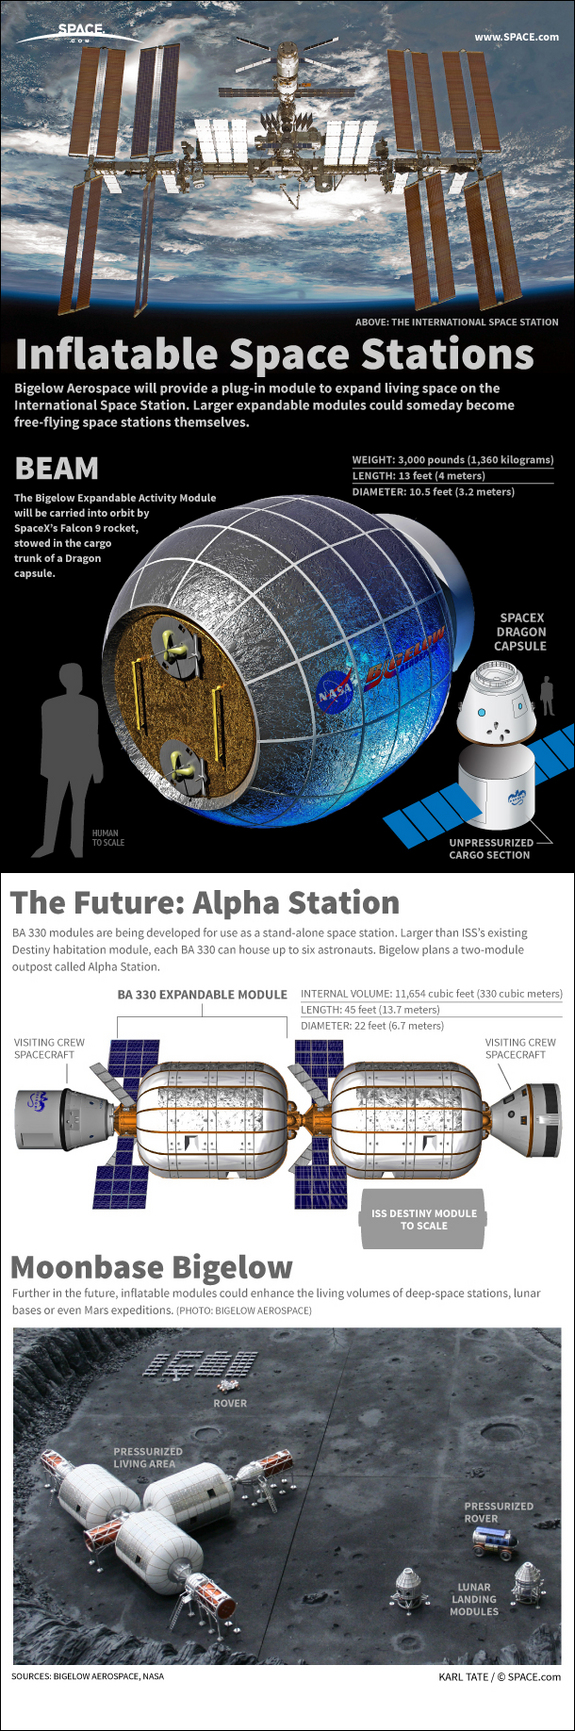 Inflatable Habitats for Multiple Space Environments http://www.space.com/19297-inflatable-space-stations-bigelow-aerospace-infographic.html